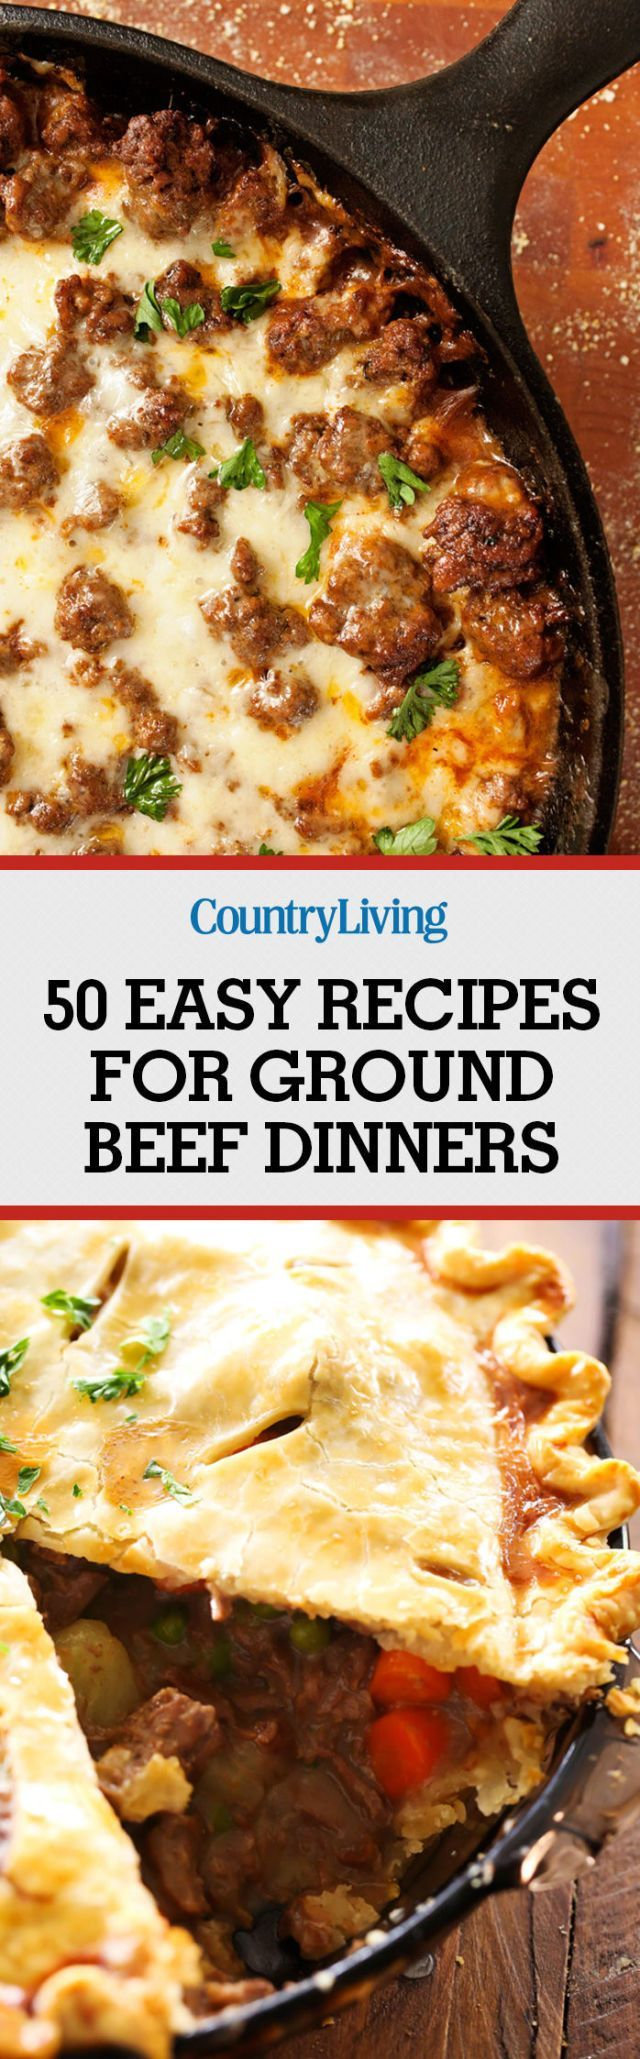 100 ground beef recipes on pinterest quick ground beef